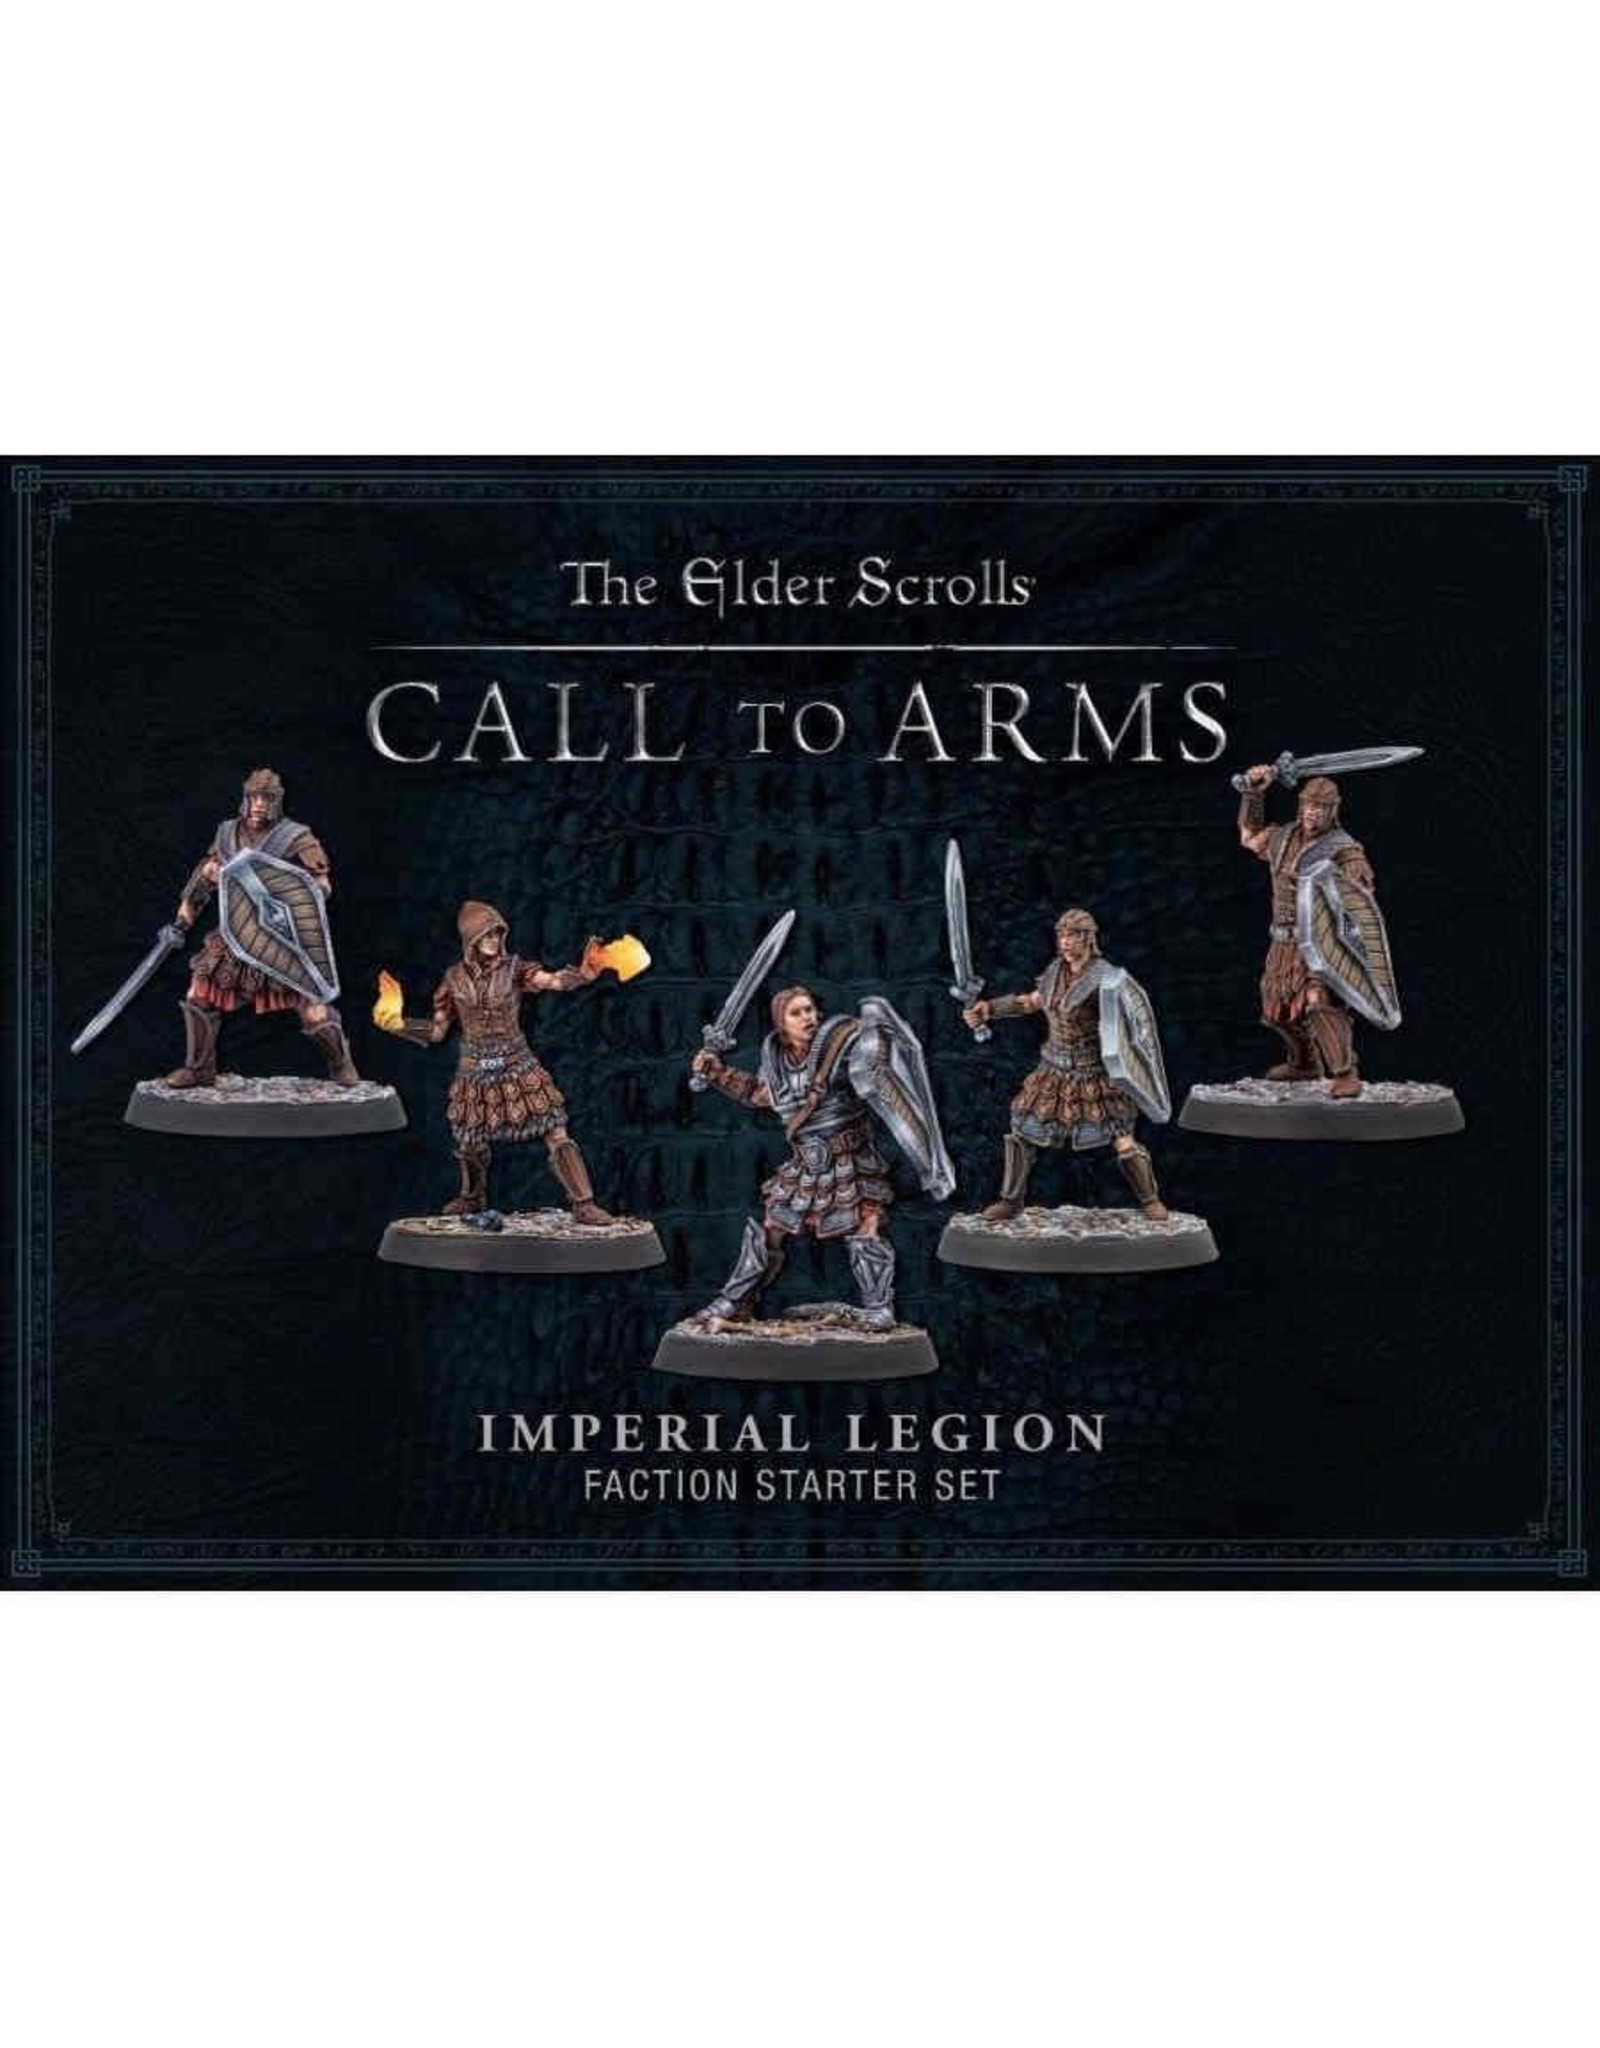 The Elder Scrolls Call to Arms Imperial Faction Starter Set